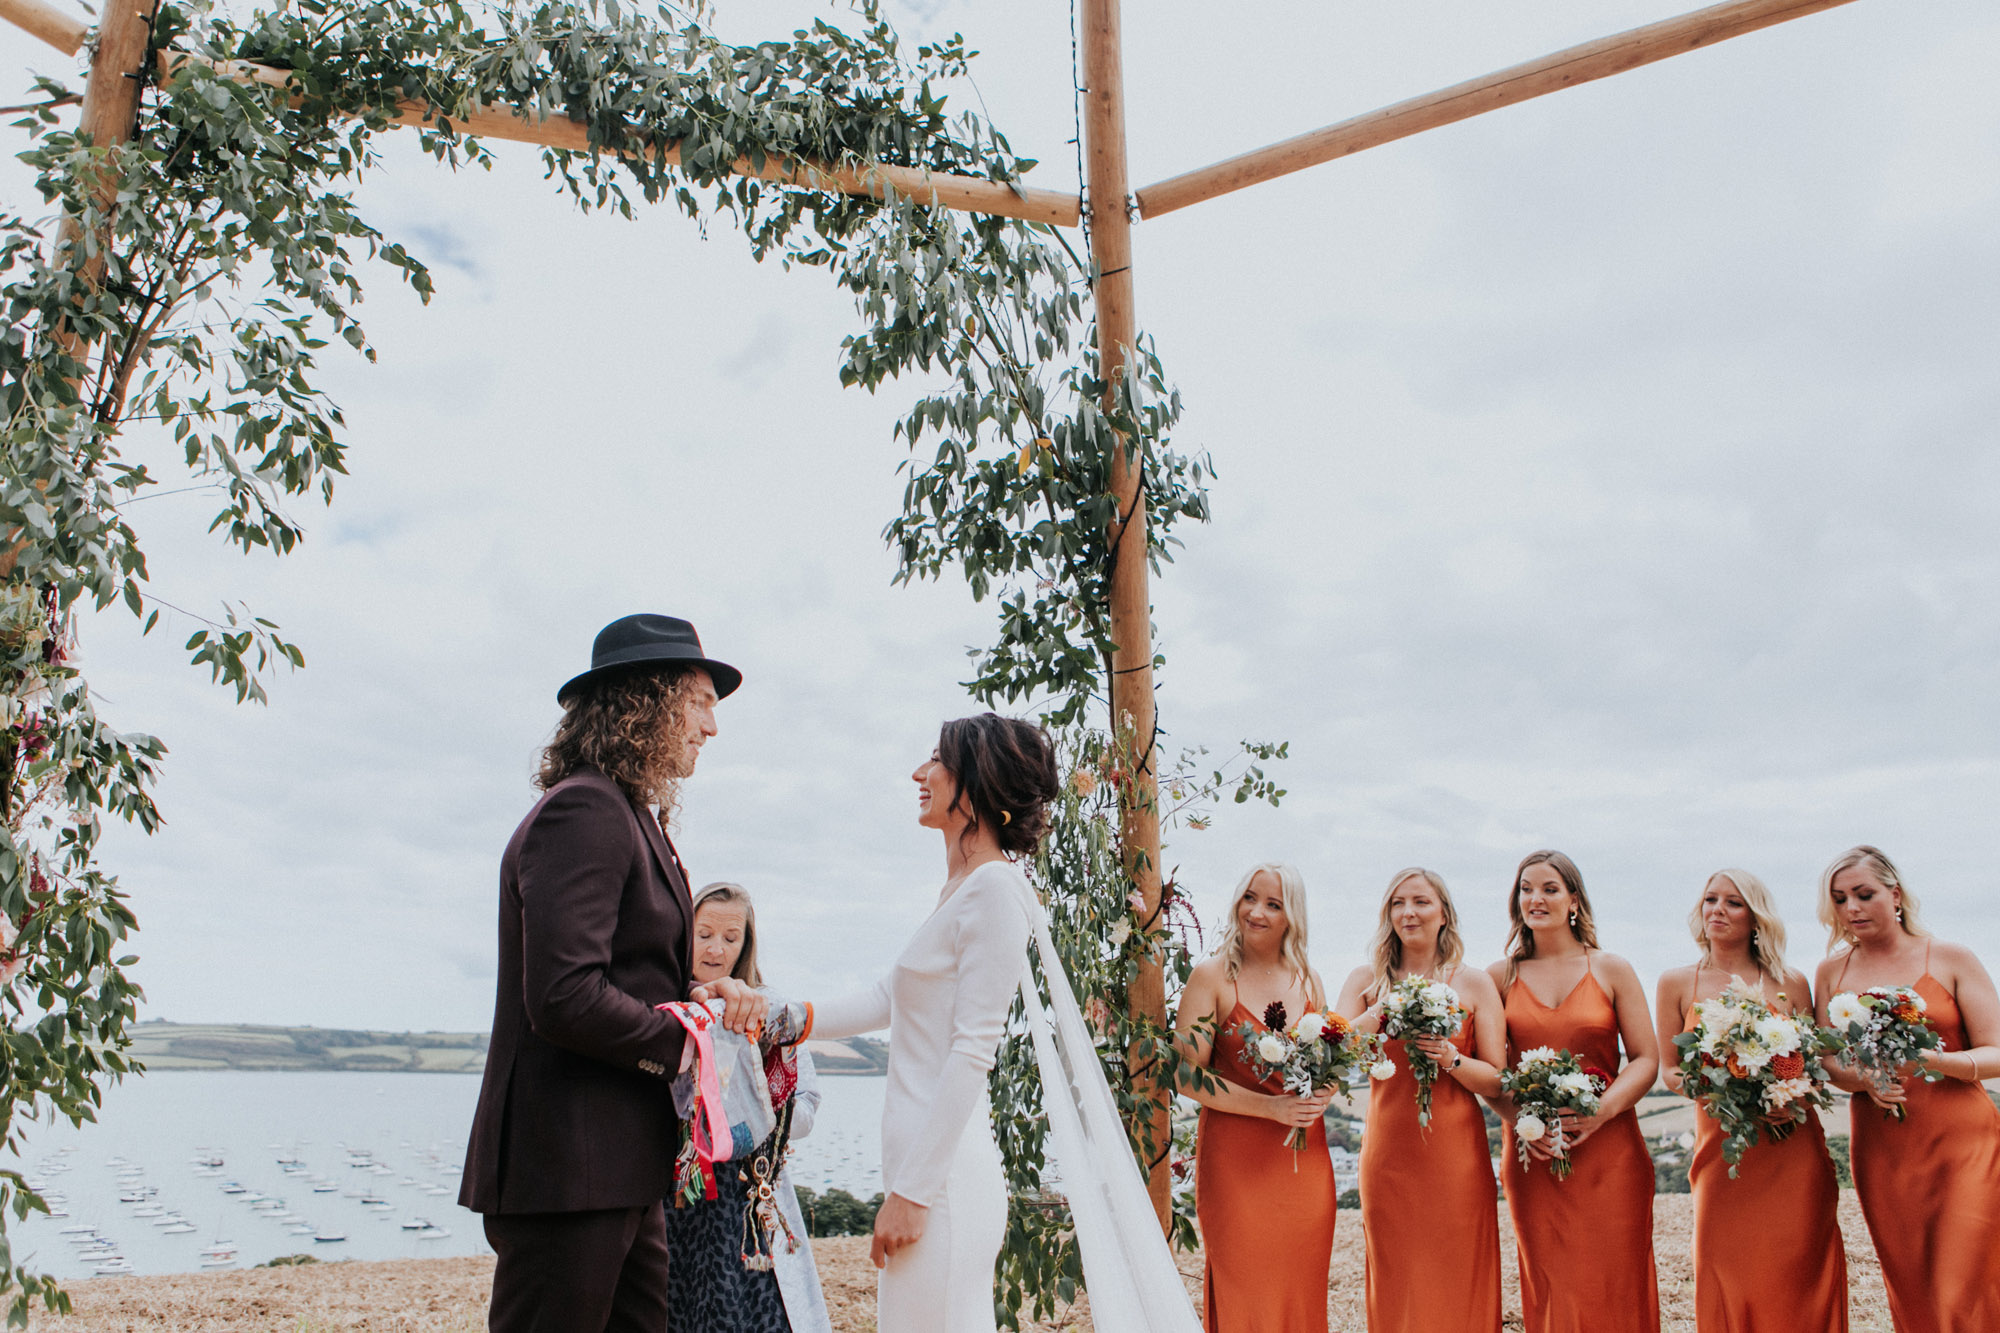 10 Tips for Planning an Epic Tipi Wedding - July 2020